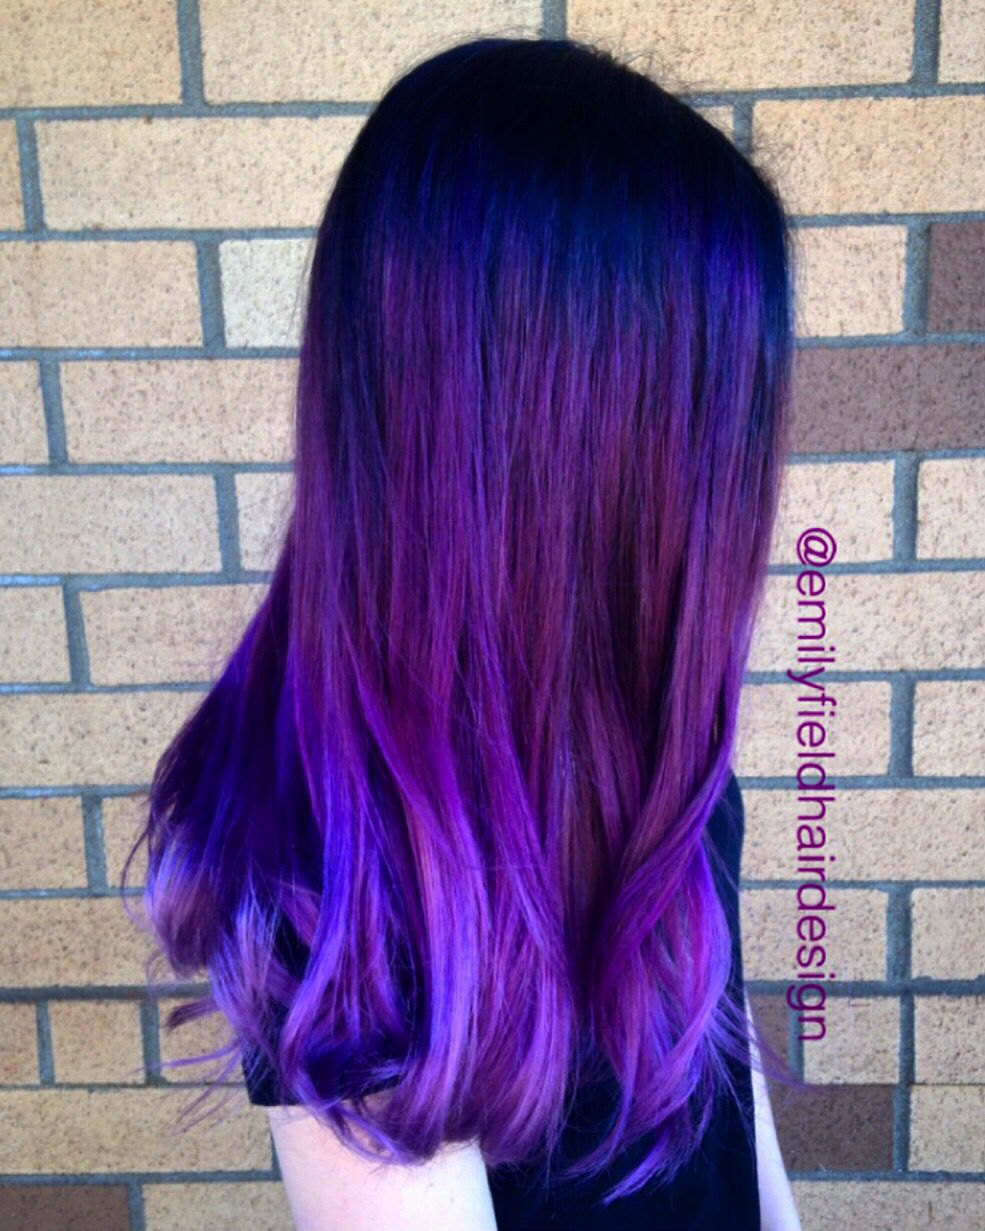 Bright Purple Hair Faded Purple Ends Black Roots Color Melt Color Correction By Emily Field Bright Purple Hair Purple Hair Hair